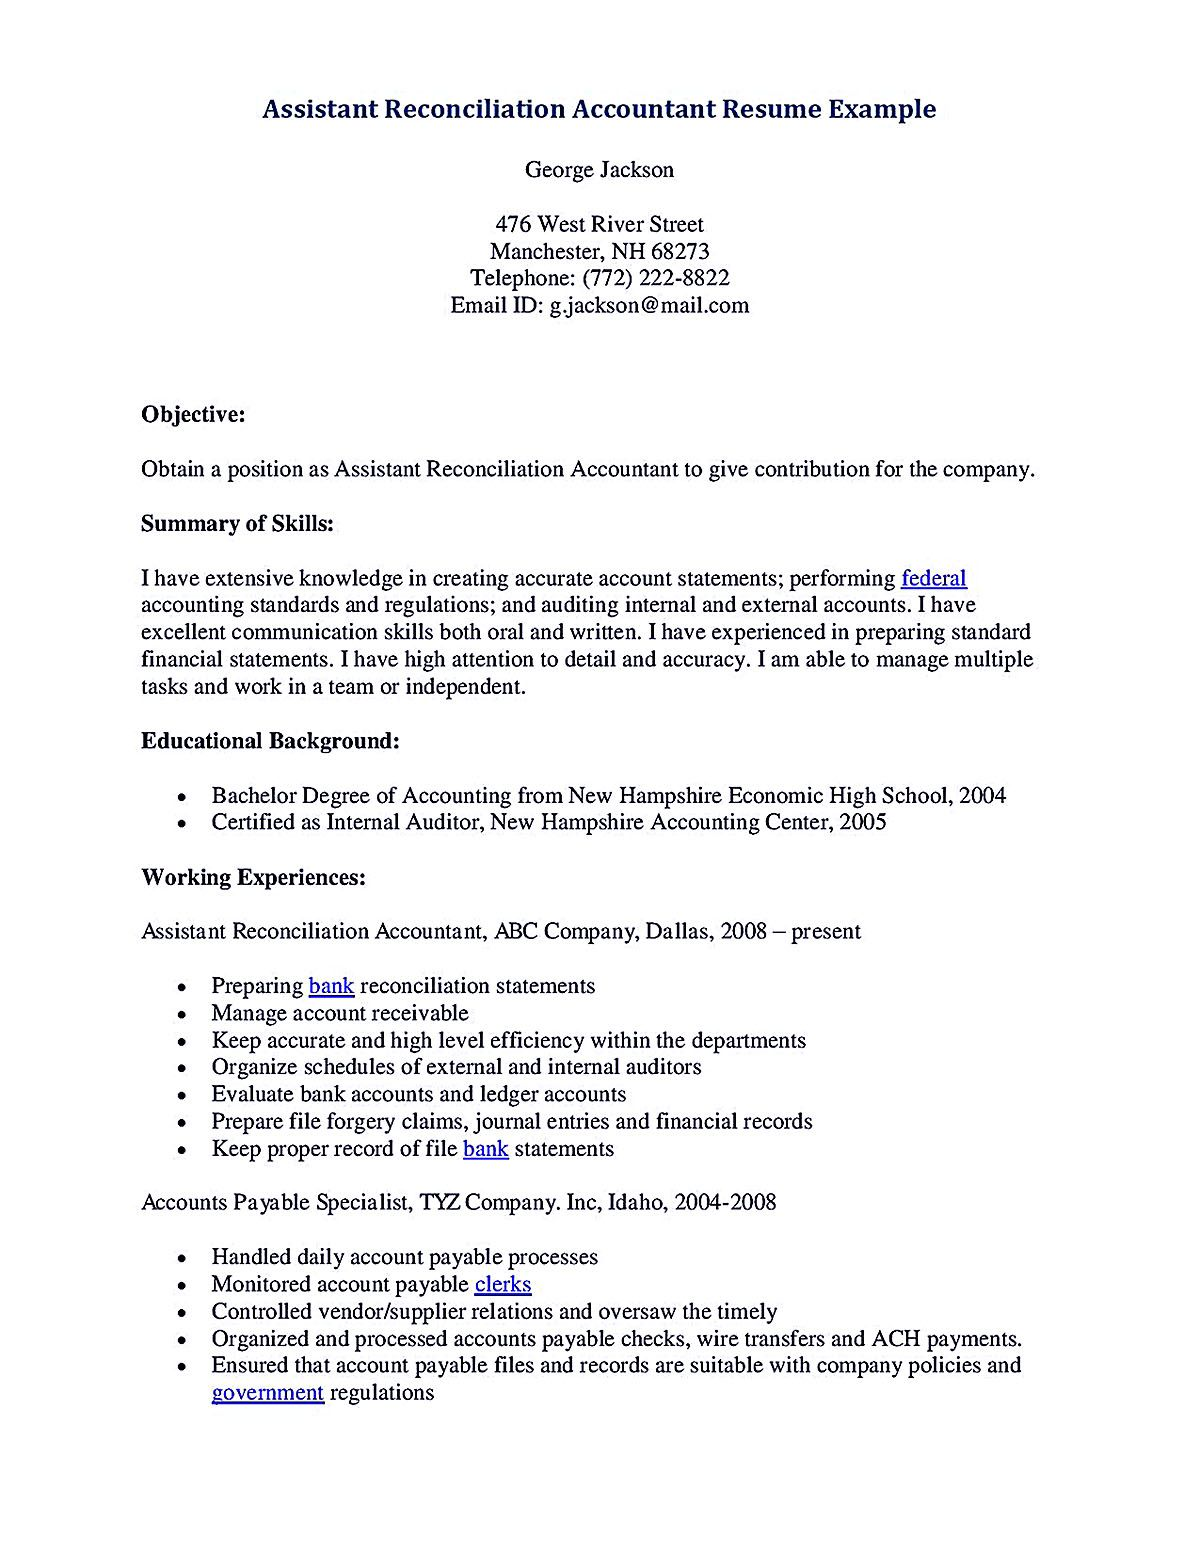 Resume For Accounting Resume For Accounting Assistant Whether Or Not Accounting